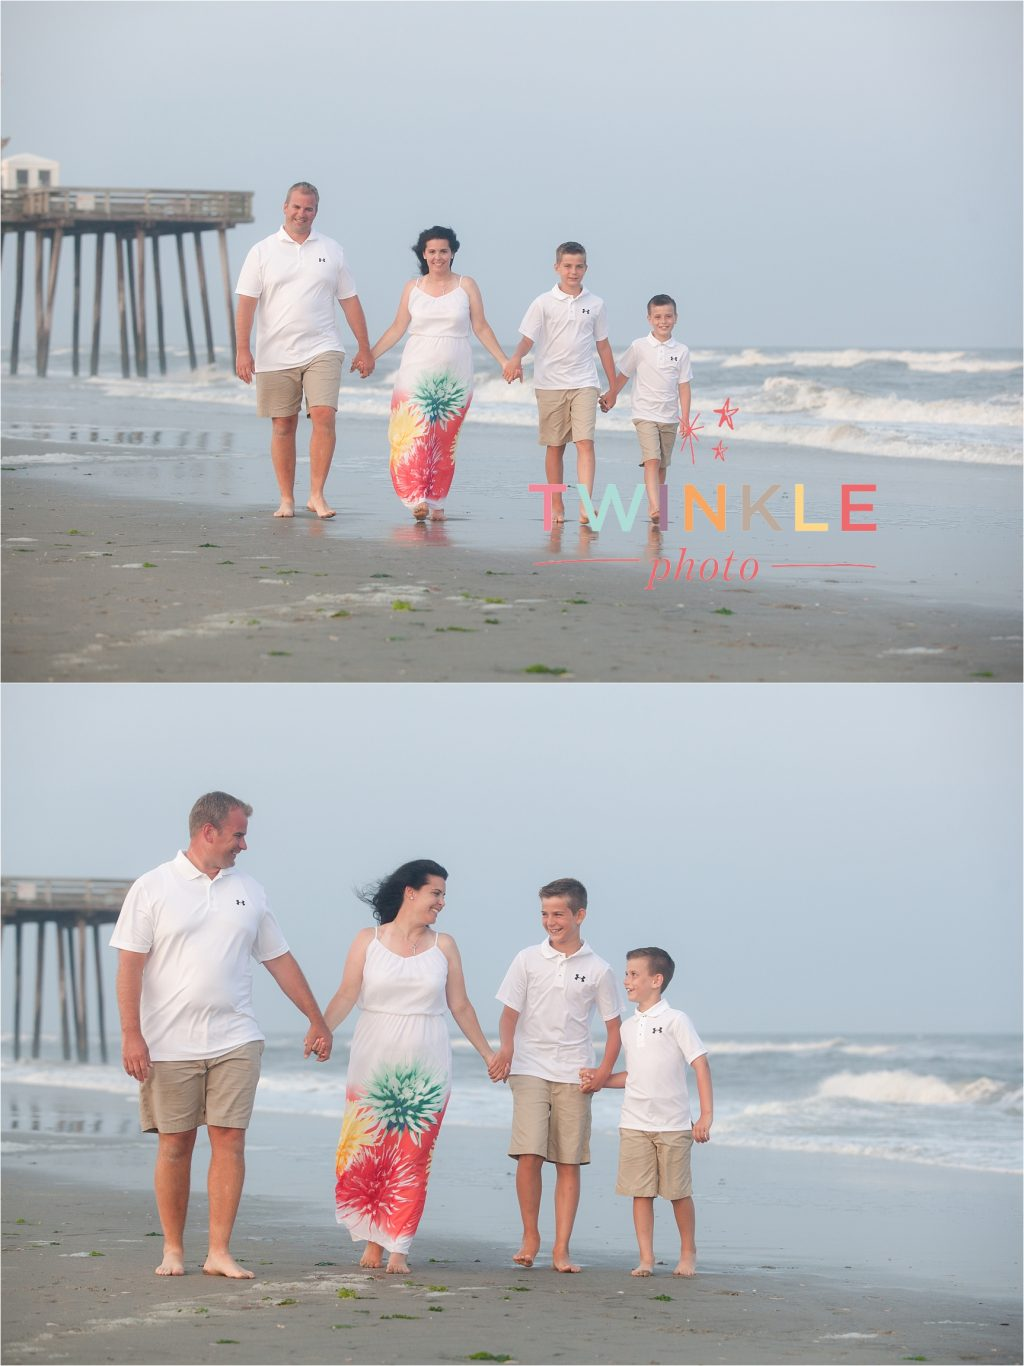 OCNJ Ocean City NJ New Jersey Beach Family Portrait Photographer Photography Twinkle Photo-05